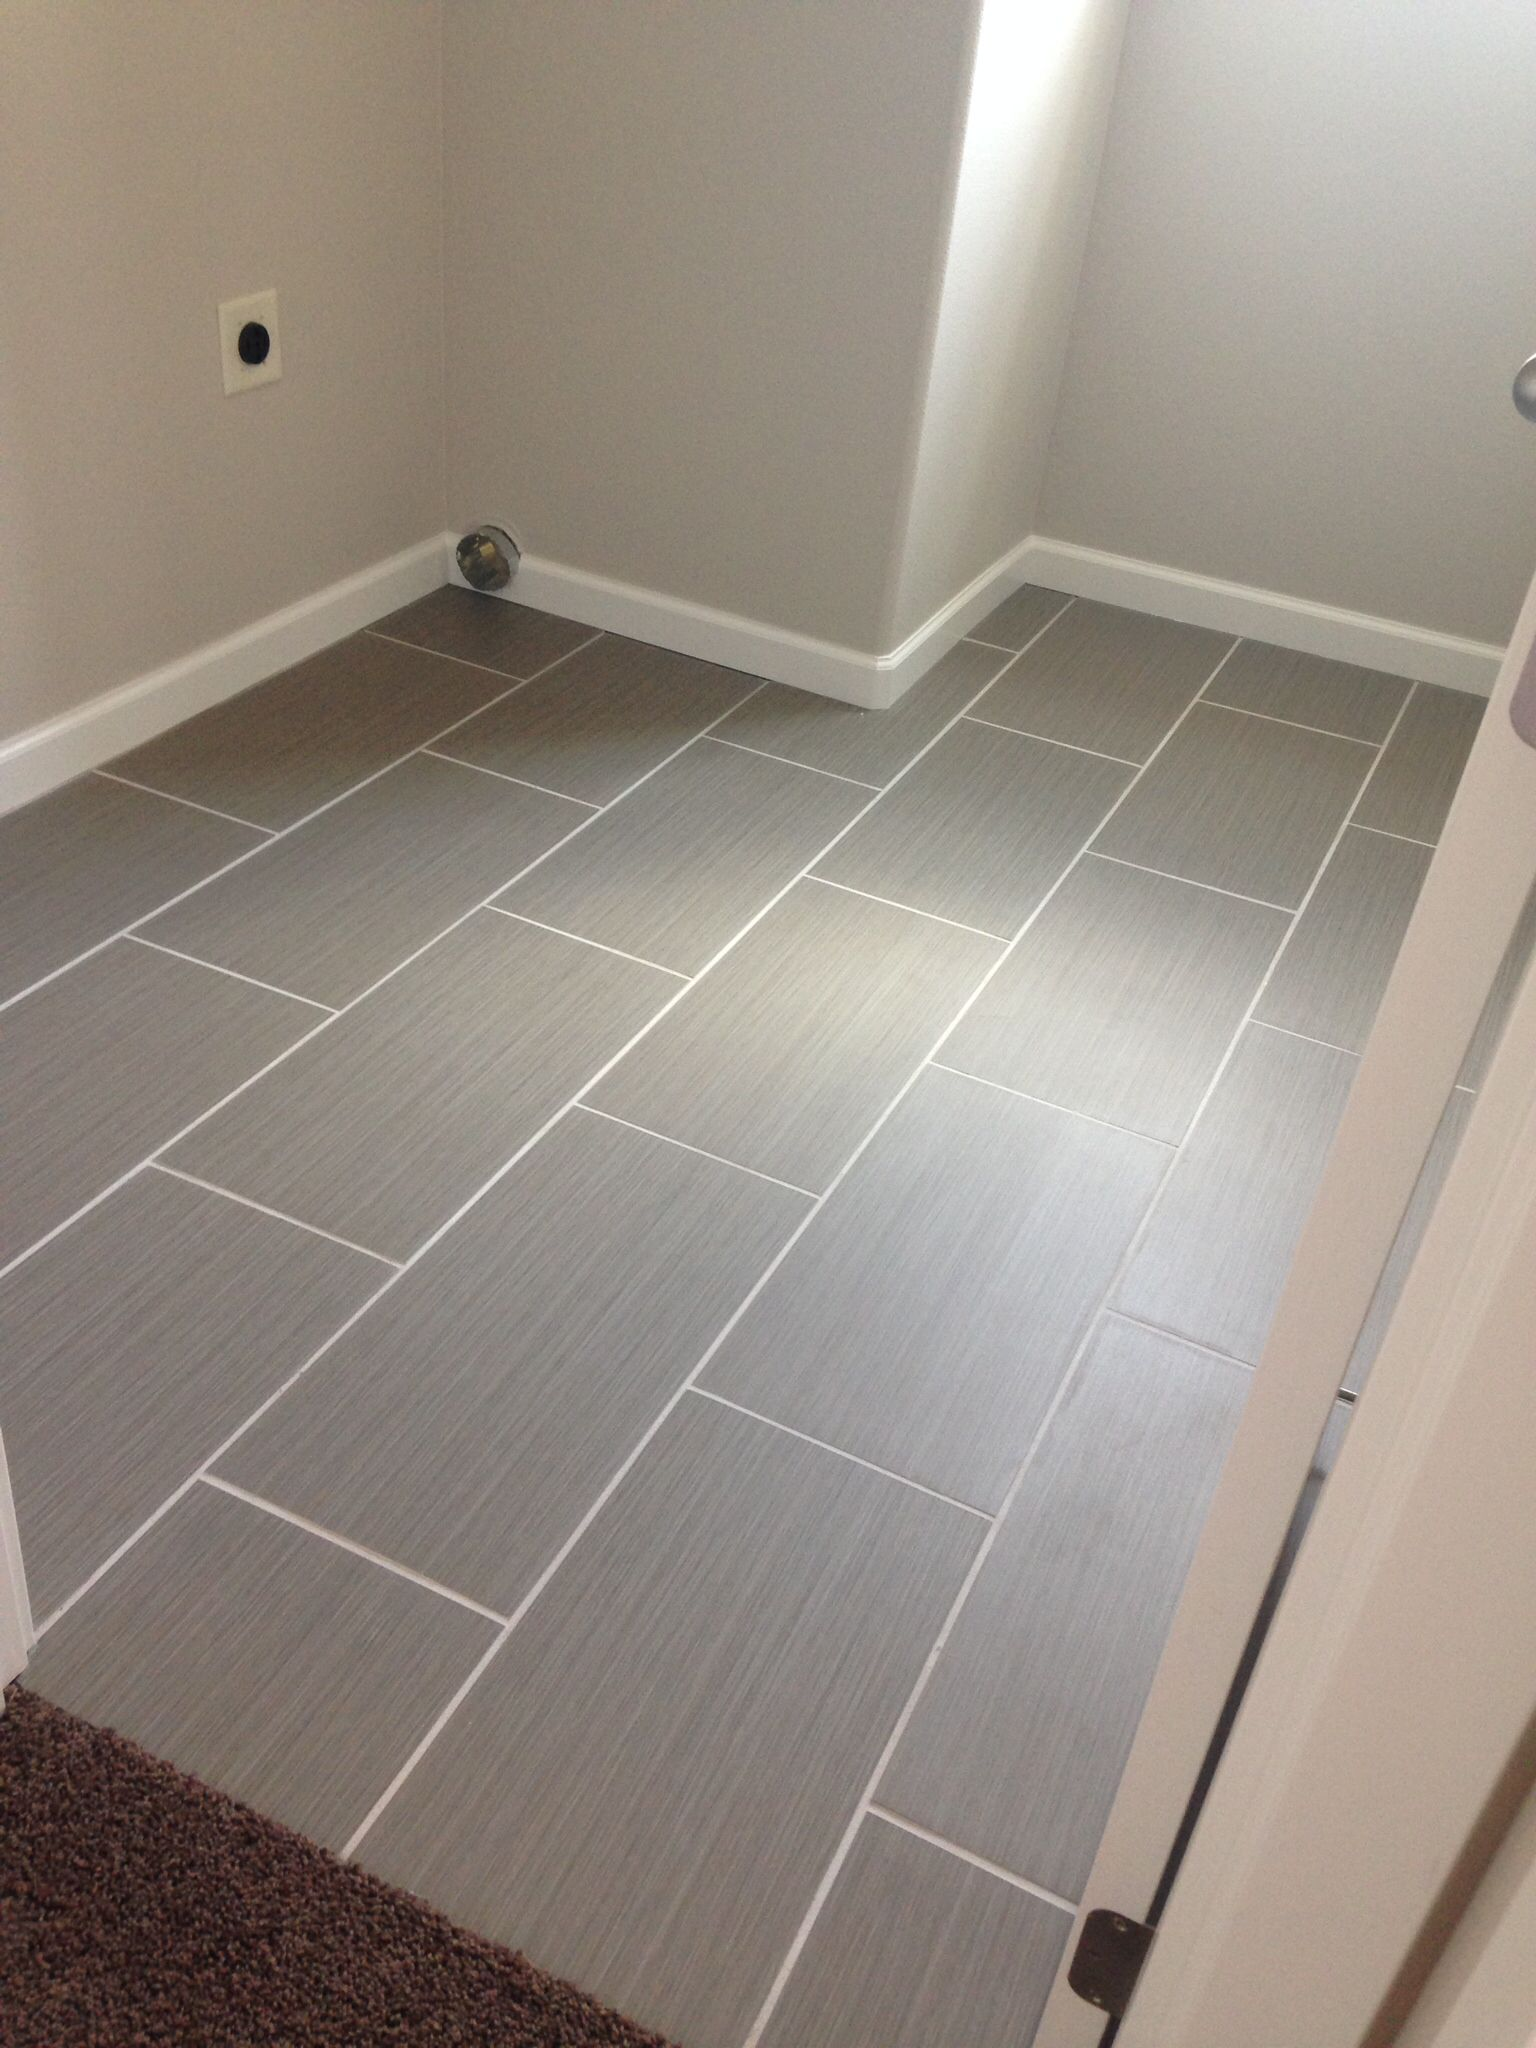 Gray tile from costco 721343 neo tile 1 39 2 39 porcelain tile 10 sq ft 5 pc mudroom home is Bathroom shower designs with price